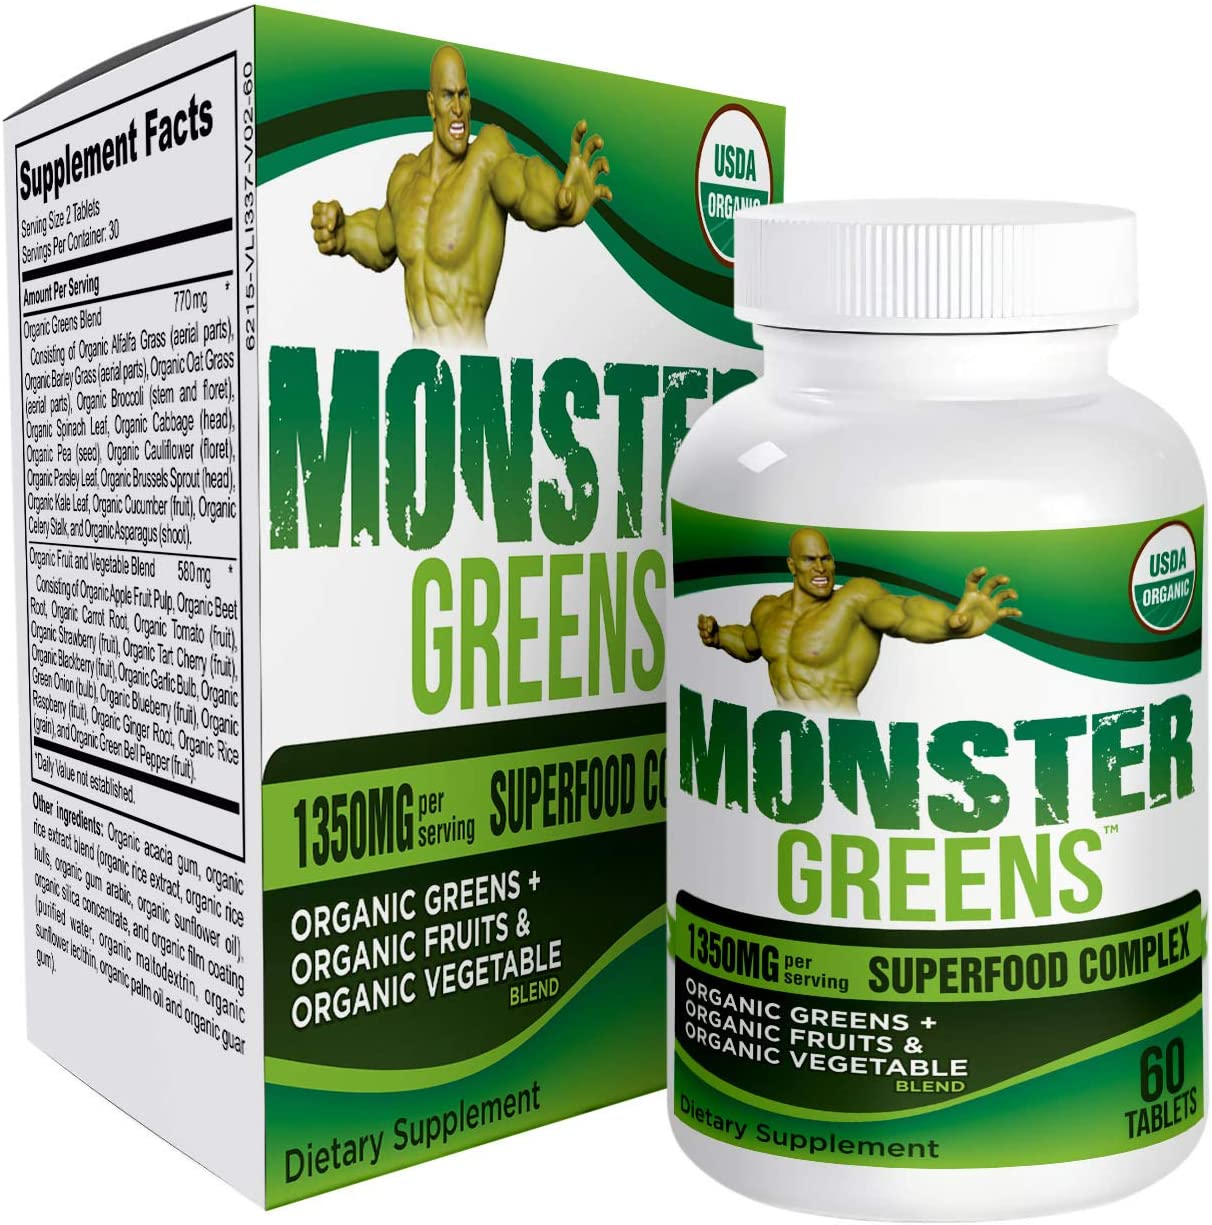 Monster-Greens All-in-1 Organic Superfood/Greens Supplement Pills - Healthy Greens - 60 Tablets